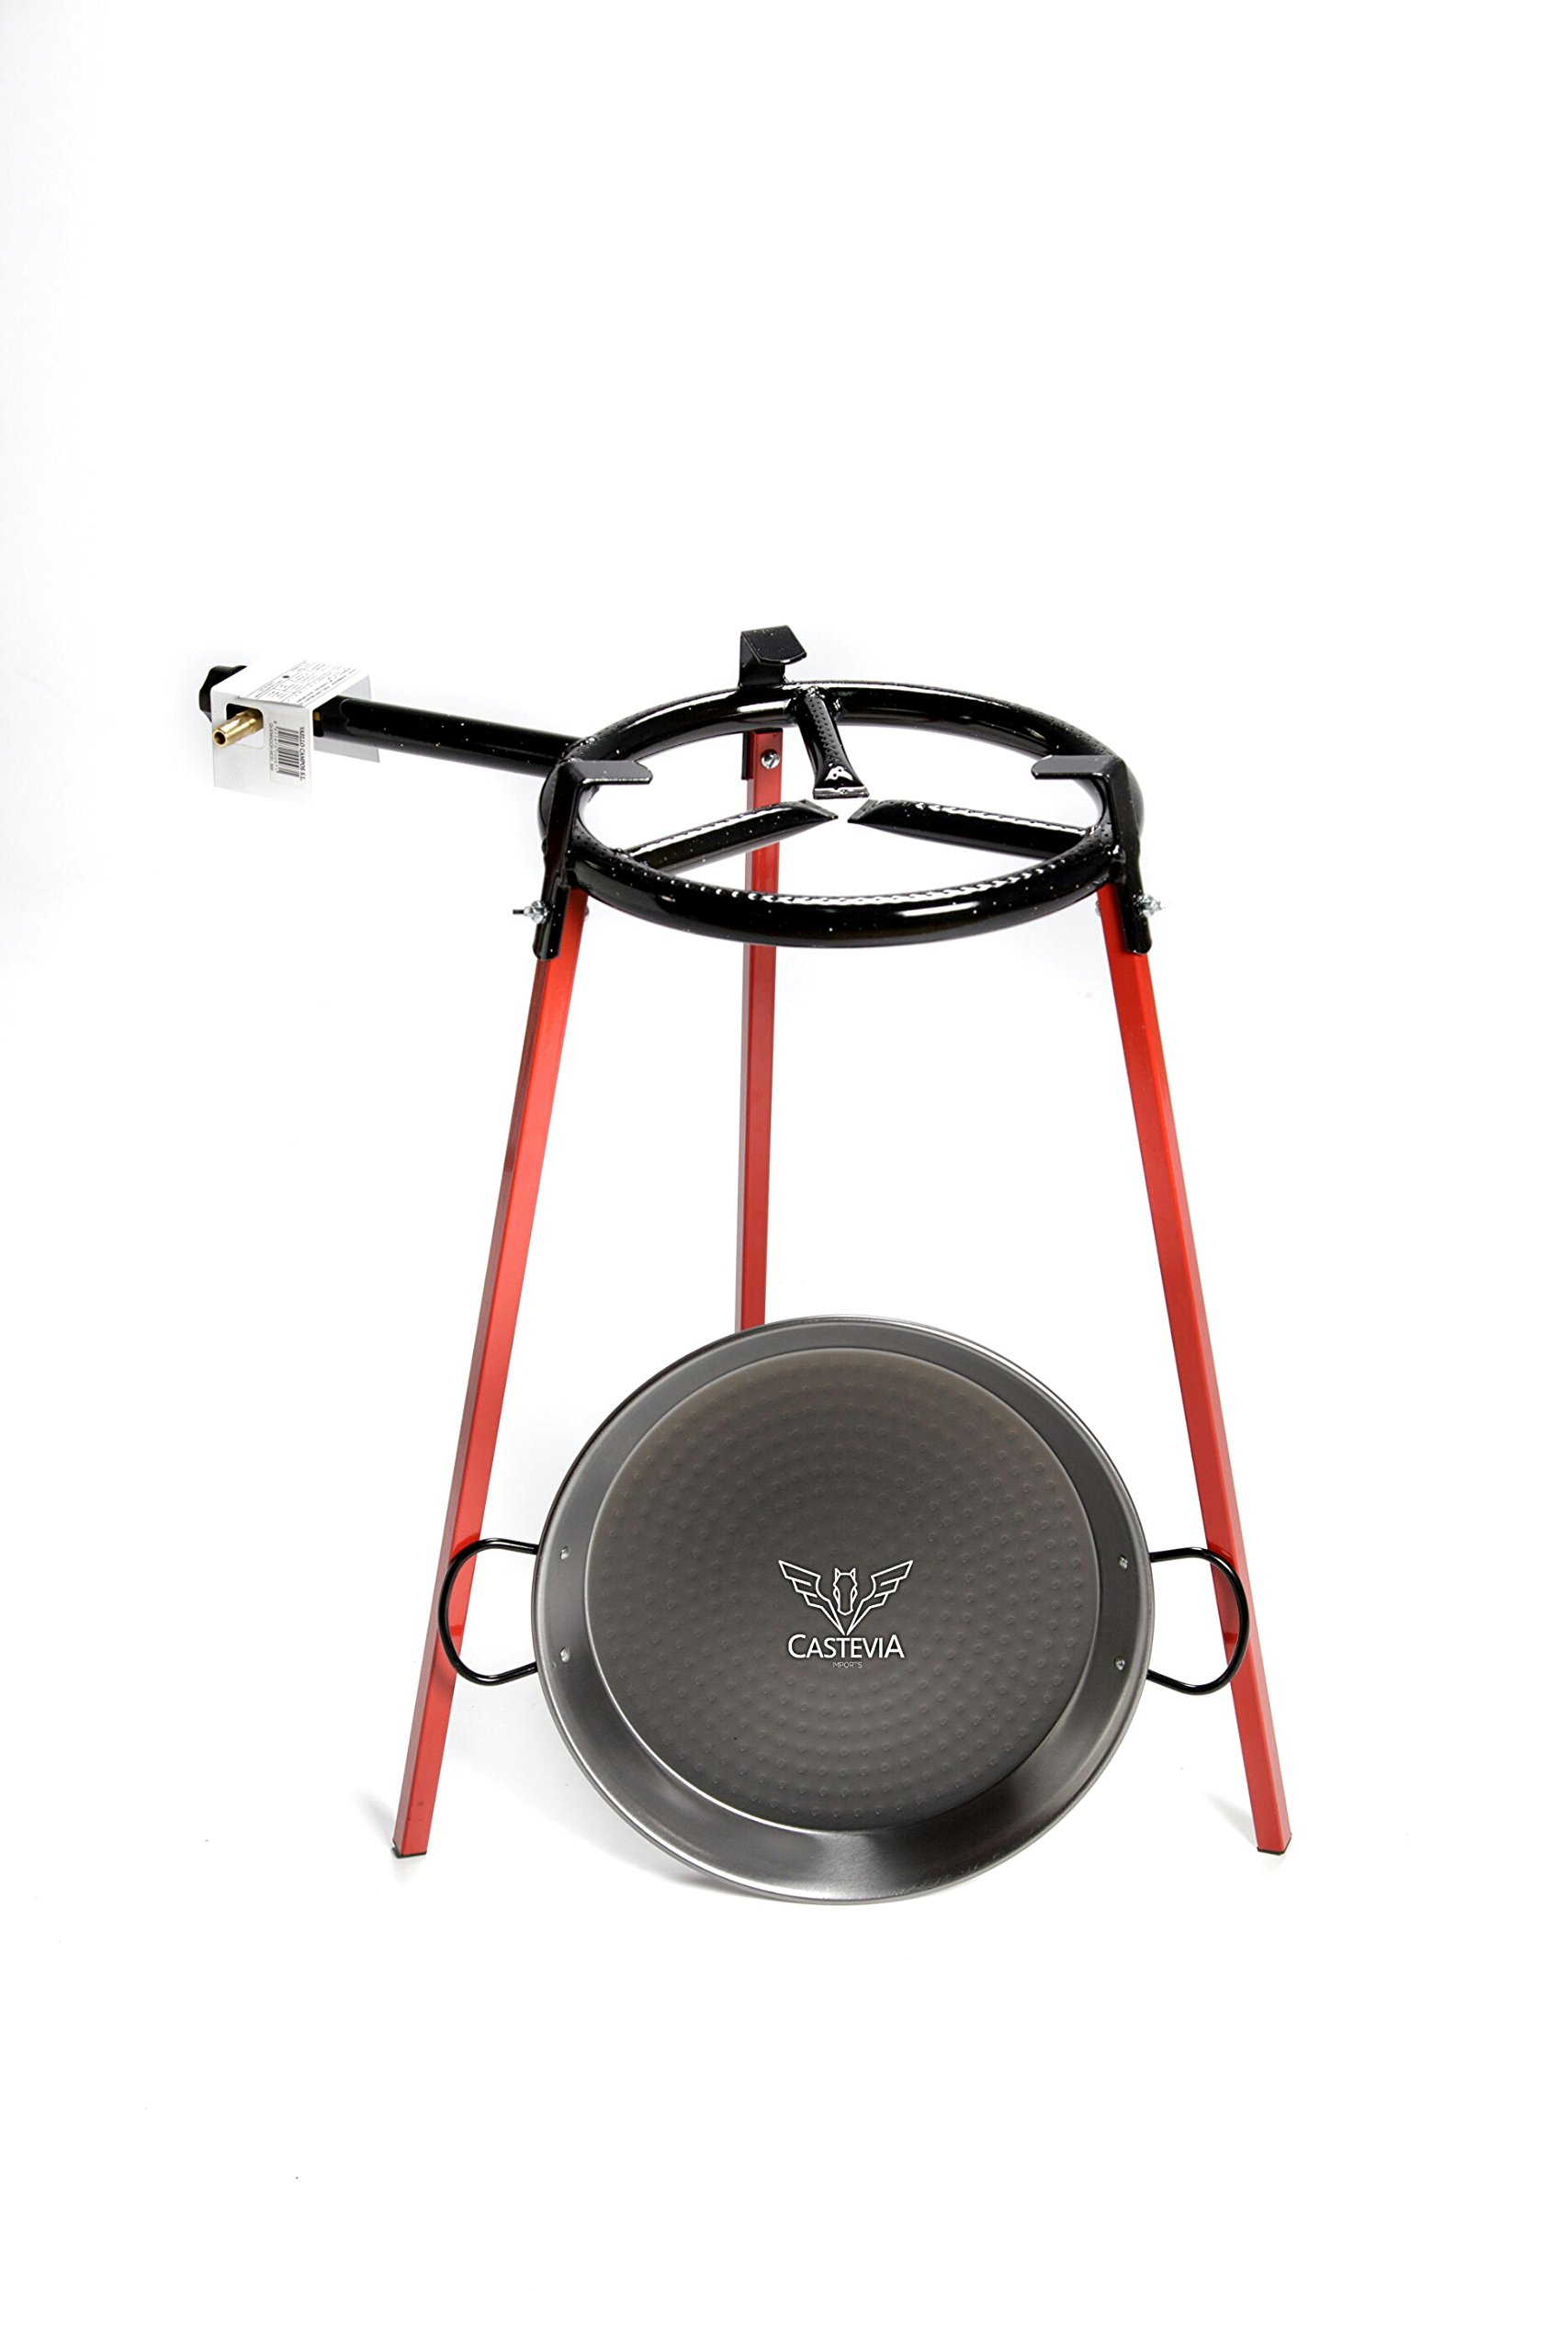 Eco Set paella pan 38cm 8 servings set of 3 square support legs + 38cm 8 servings polished steel paella pan + 300mm gas burner by Castevia